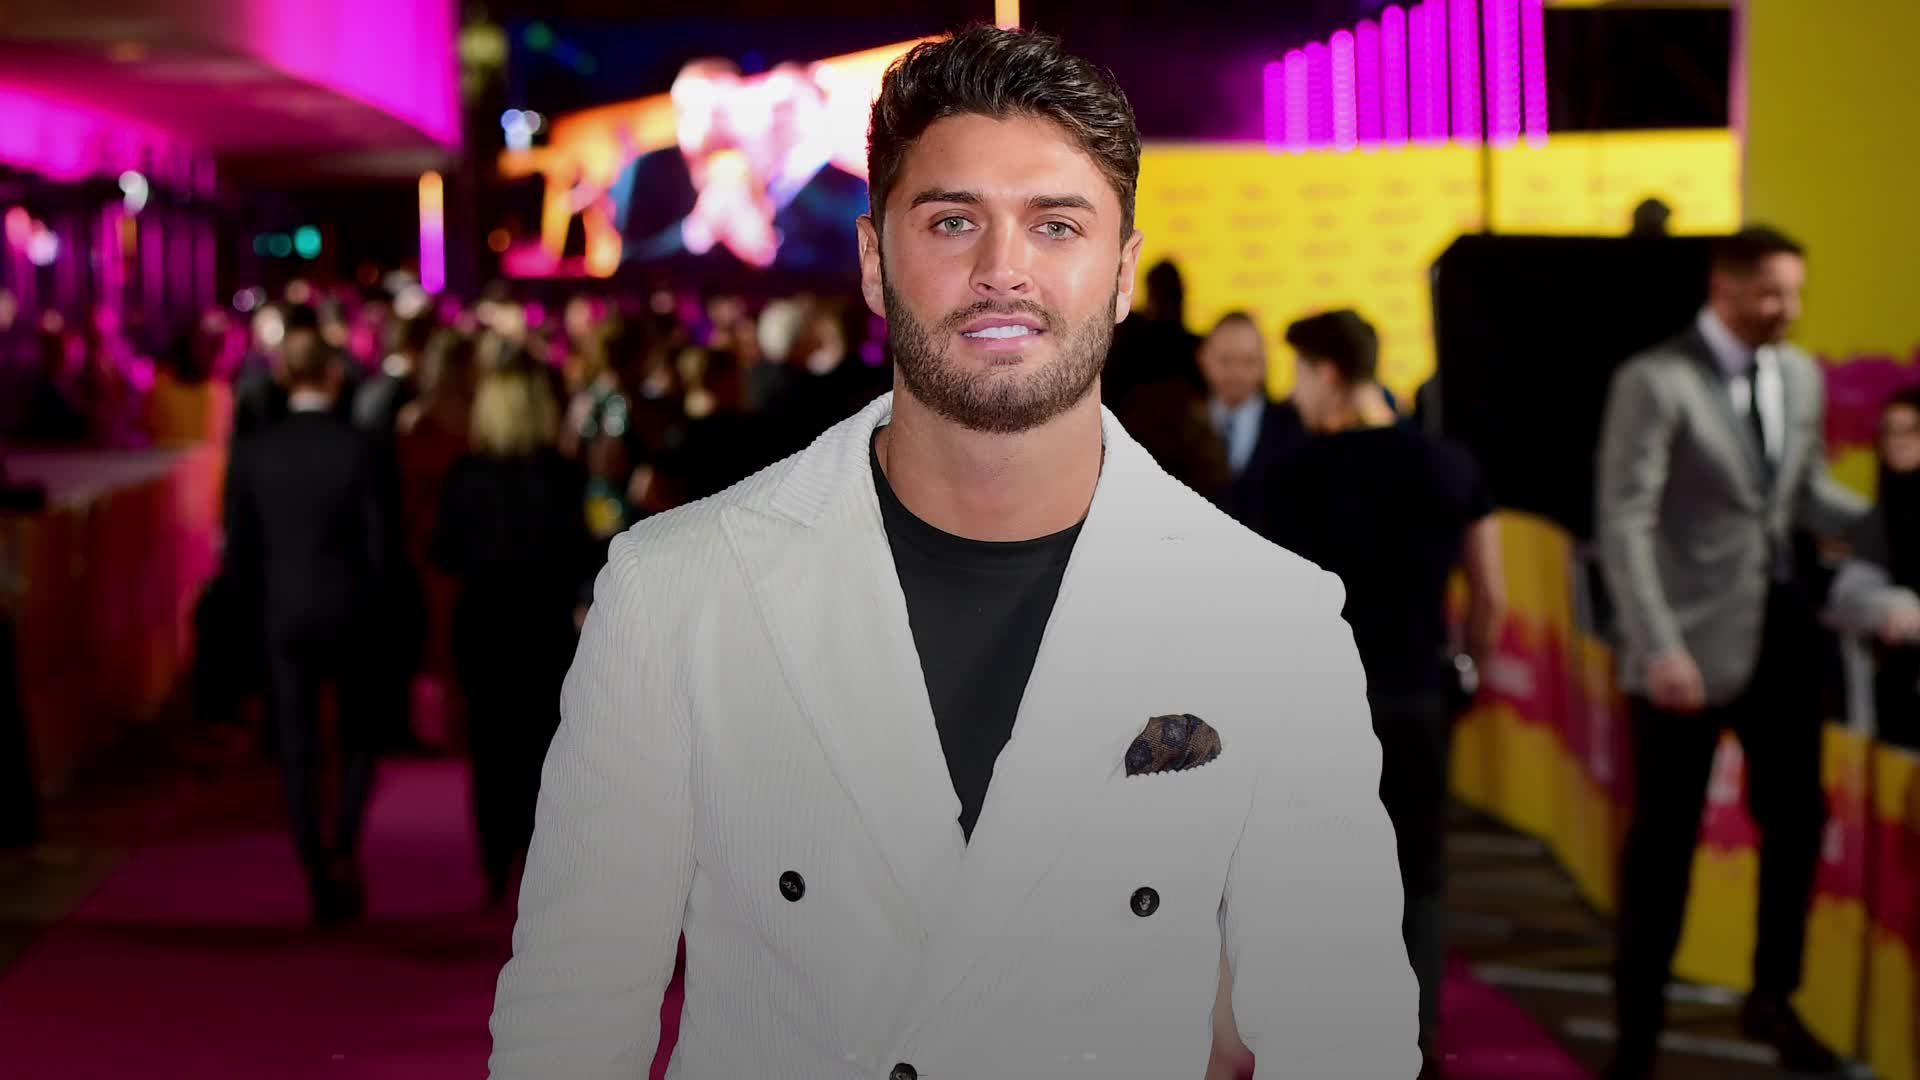 Mike Thalassitis Dead: Love Island Stars Pay Tribute To Mike After His Death, Aged 26